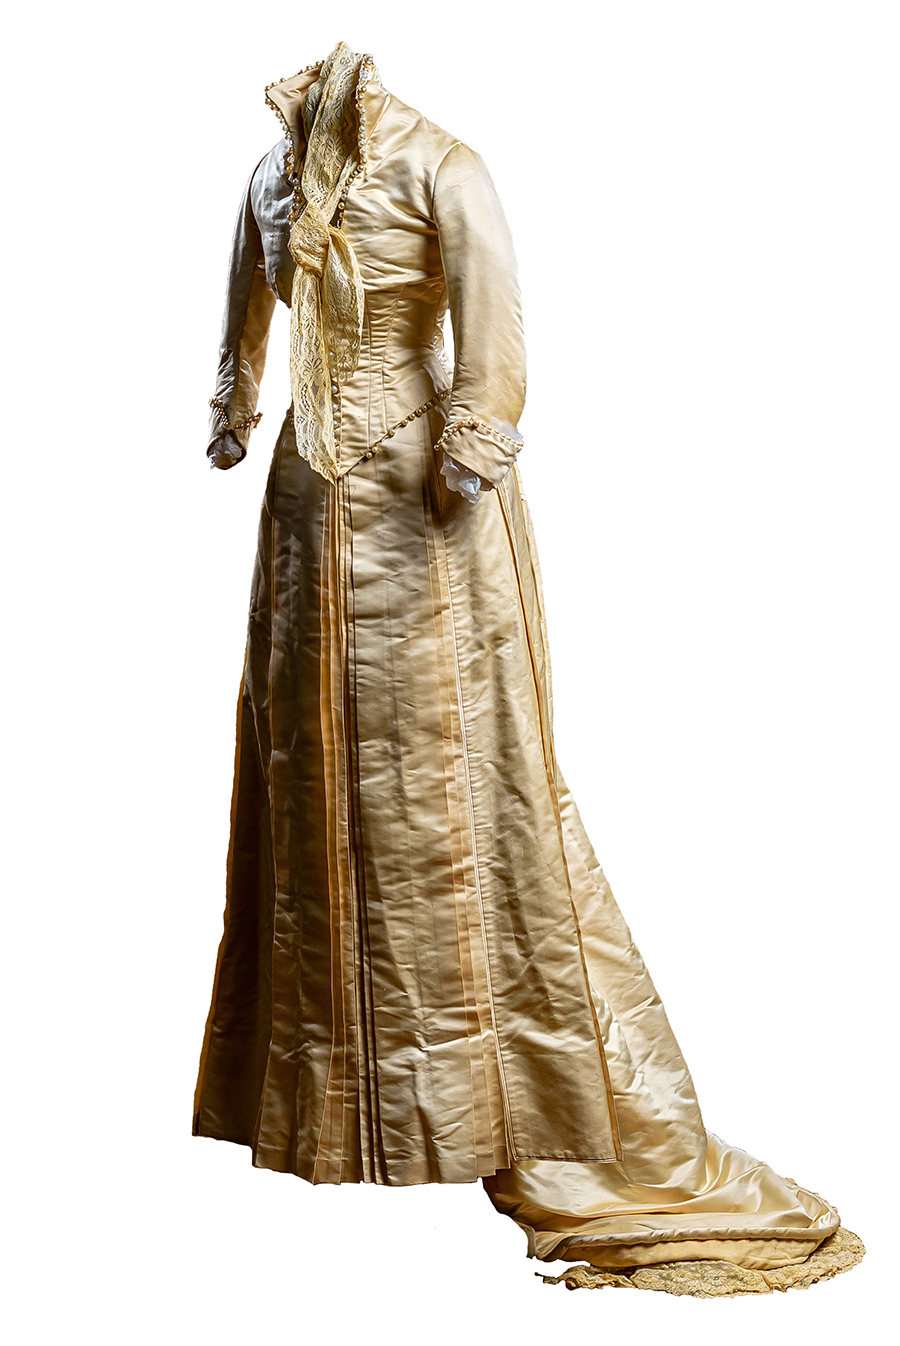 Fitted jacket tapers to pointed, bottom edged with pearls; boned tiara collar and square neckline trimmed with pearls; long sleeves have split cuffs edged with pearls; lace scarf is sewn in at the neck. Skirt has front pleats and a thick layer of pleats in back that form the bustle; the attached long train is trimmed with lace at edges.